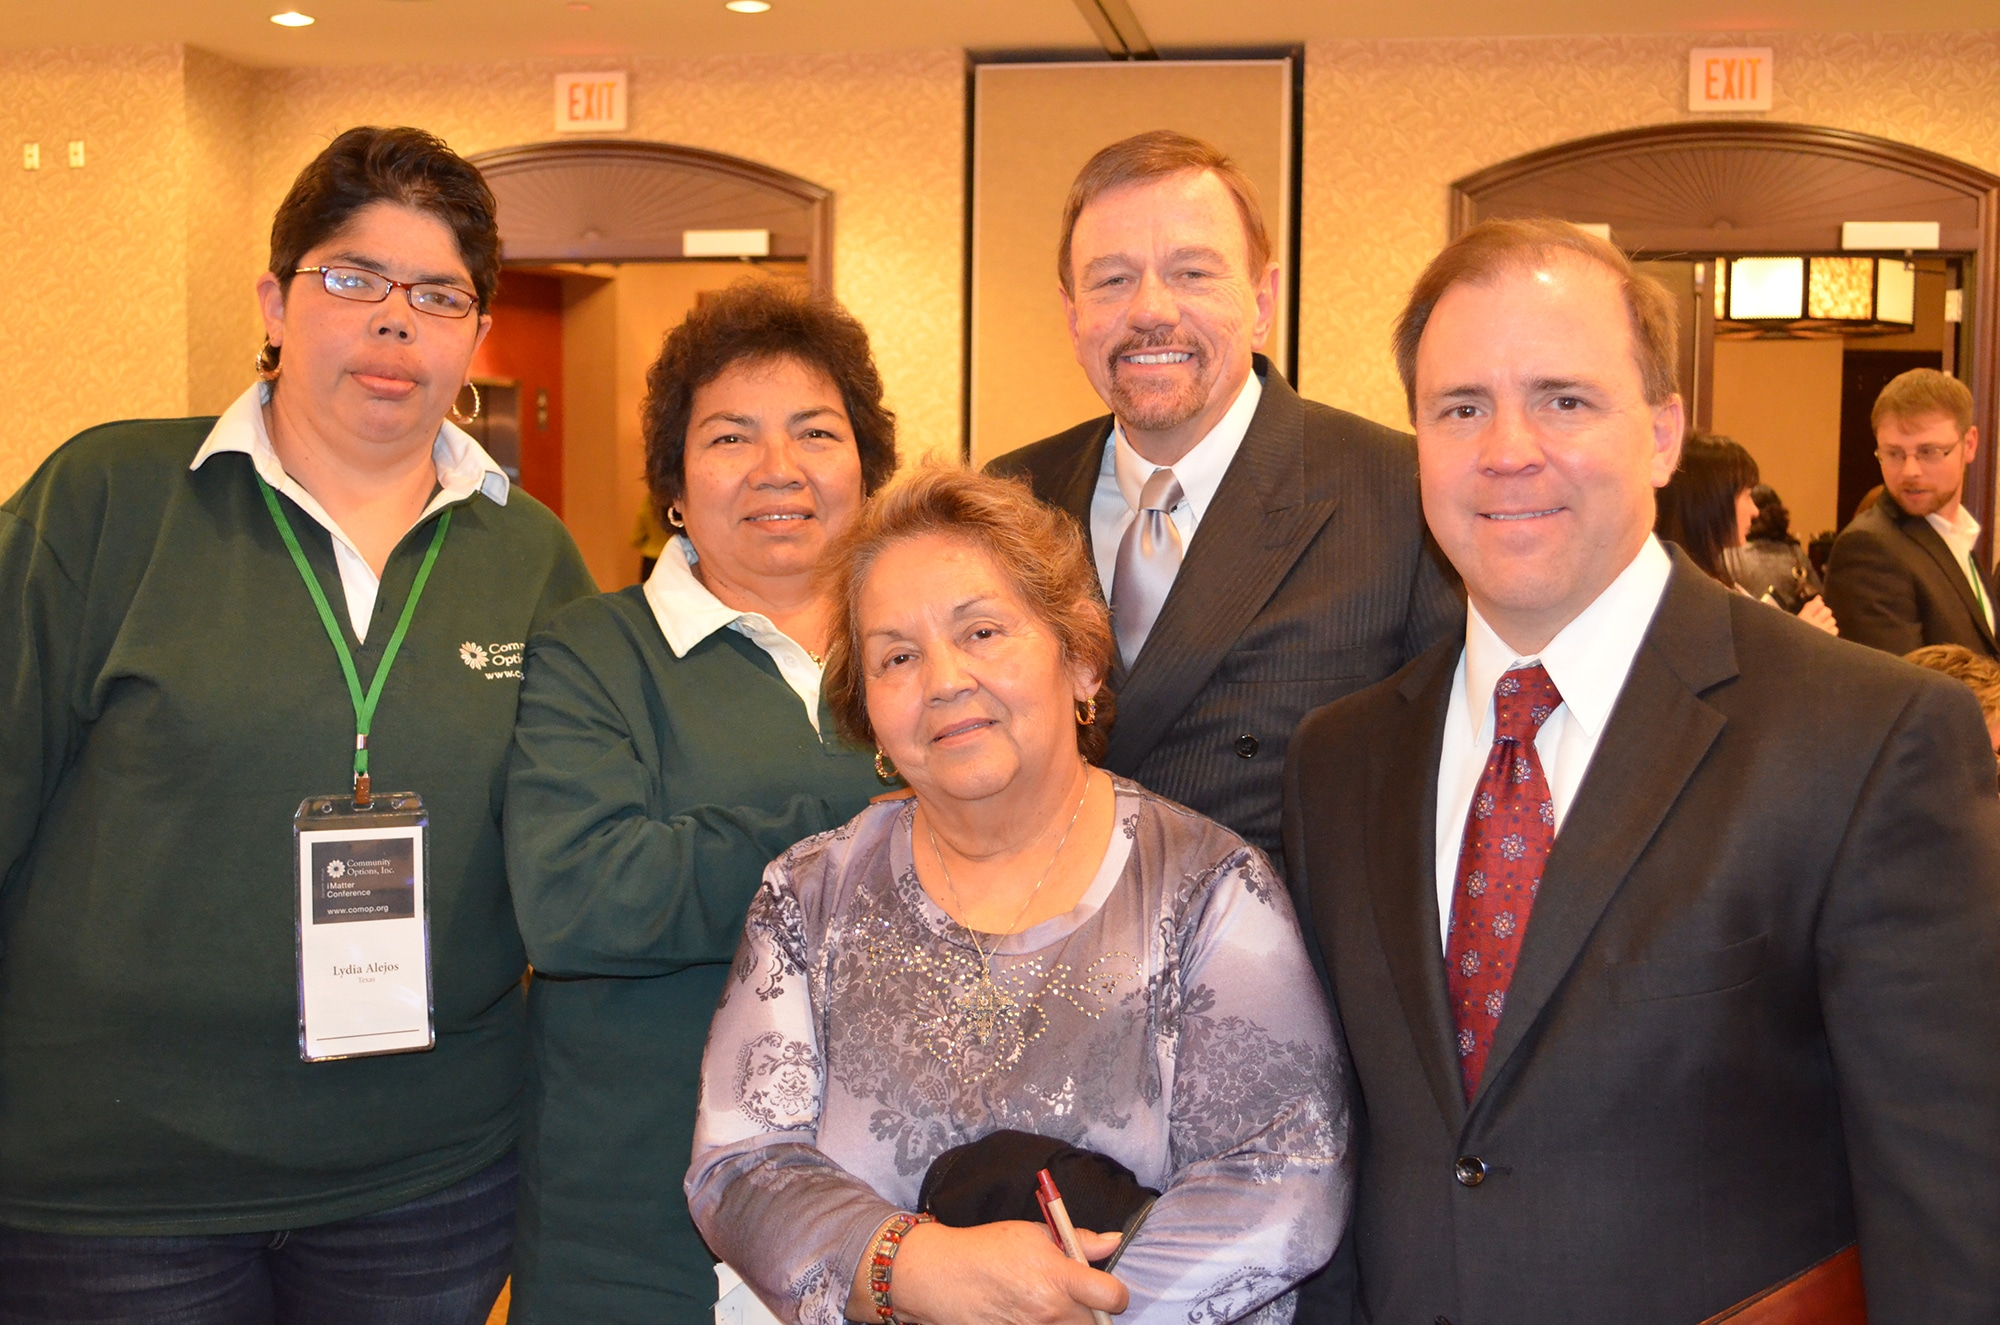 Featured in photo: Beatriz H. Mauricio, Yolanda Montez, Lydia Alejos, Robert Stack and Chris Traylor, Chief Deputy Commissioner, Texas Health & Human Services Commission